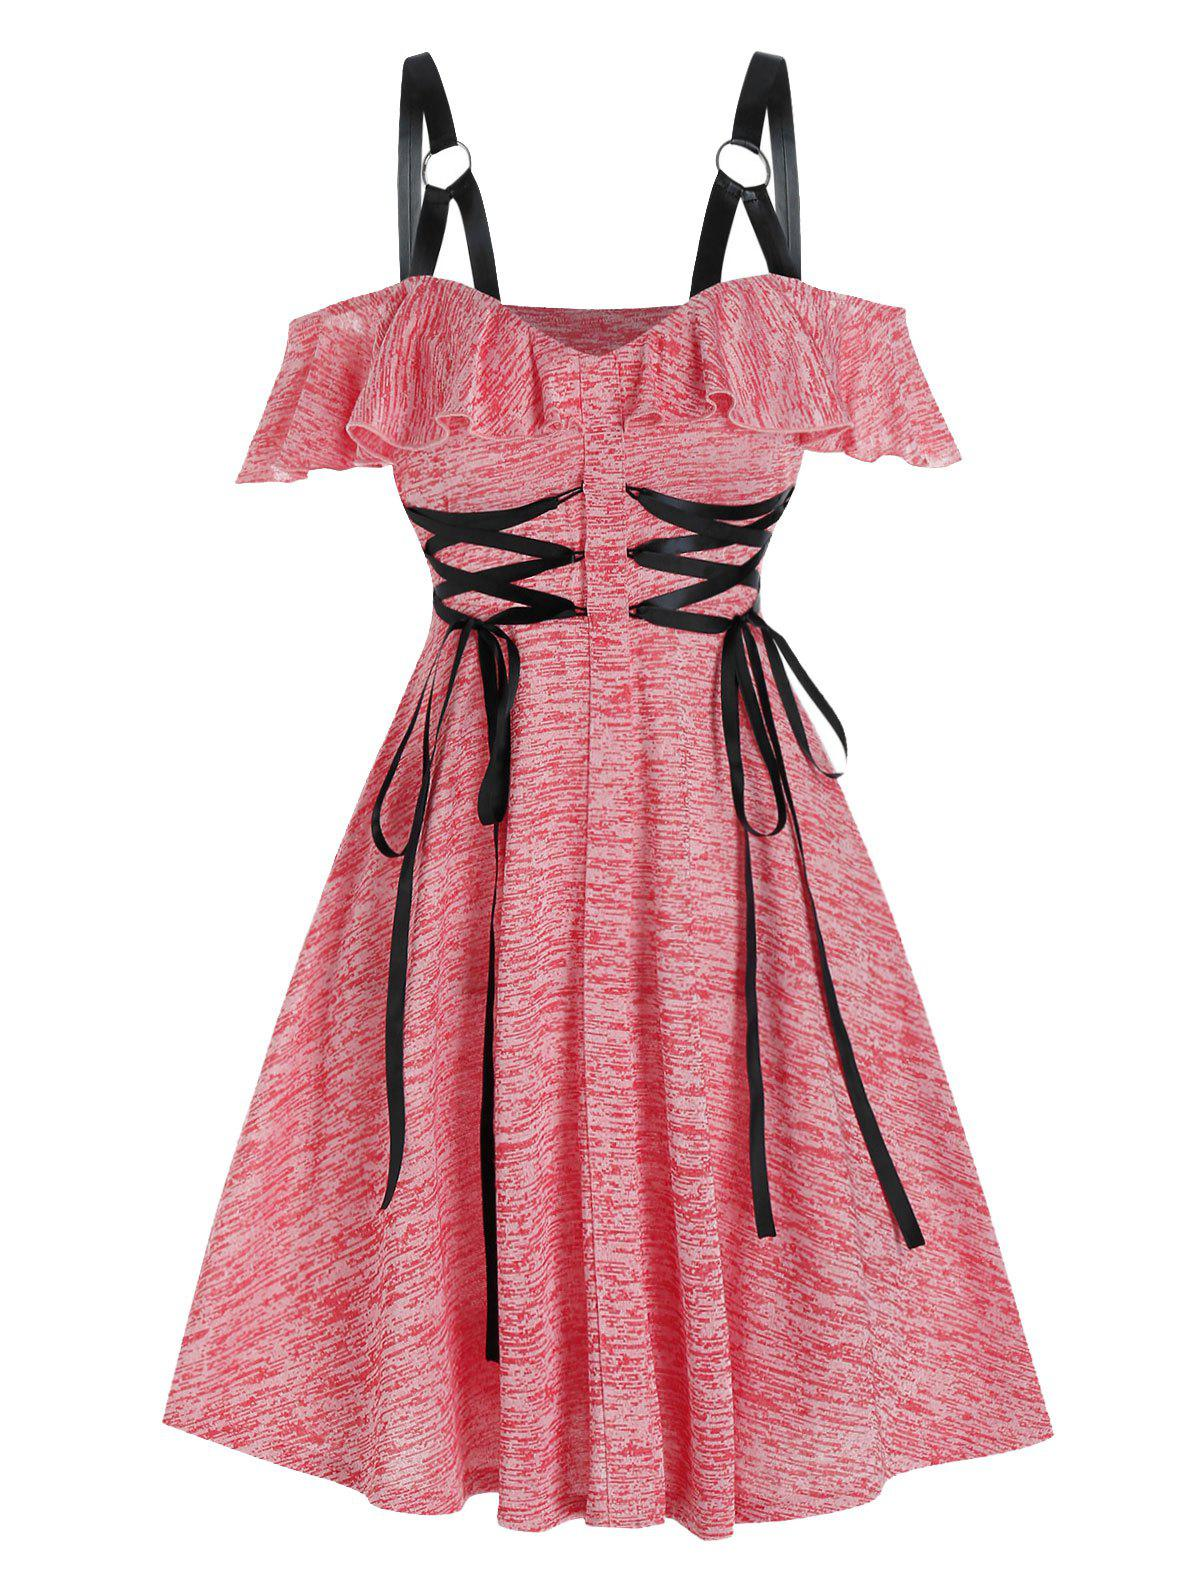 Cold Shoulder Lace-up Harness Insert Heathered Dress - BEAN RED L